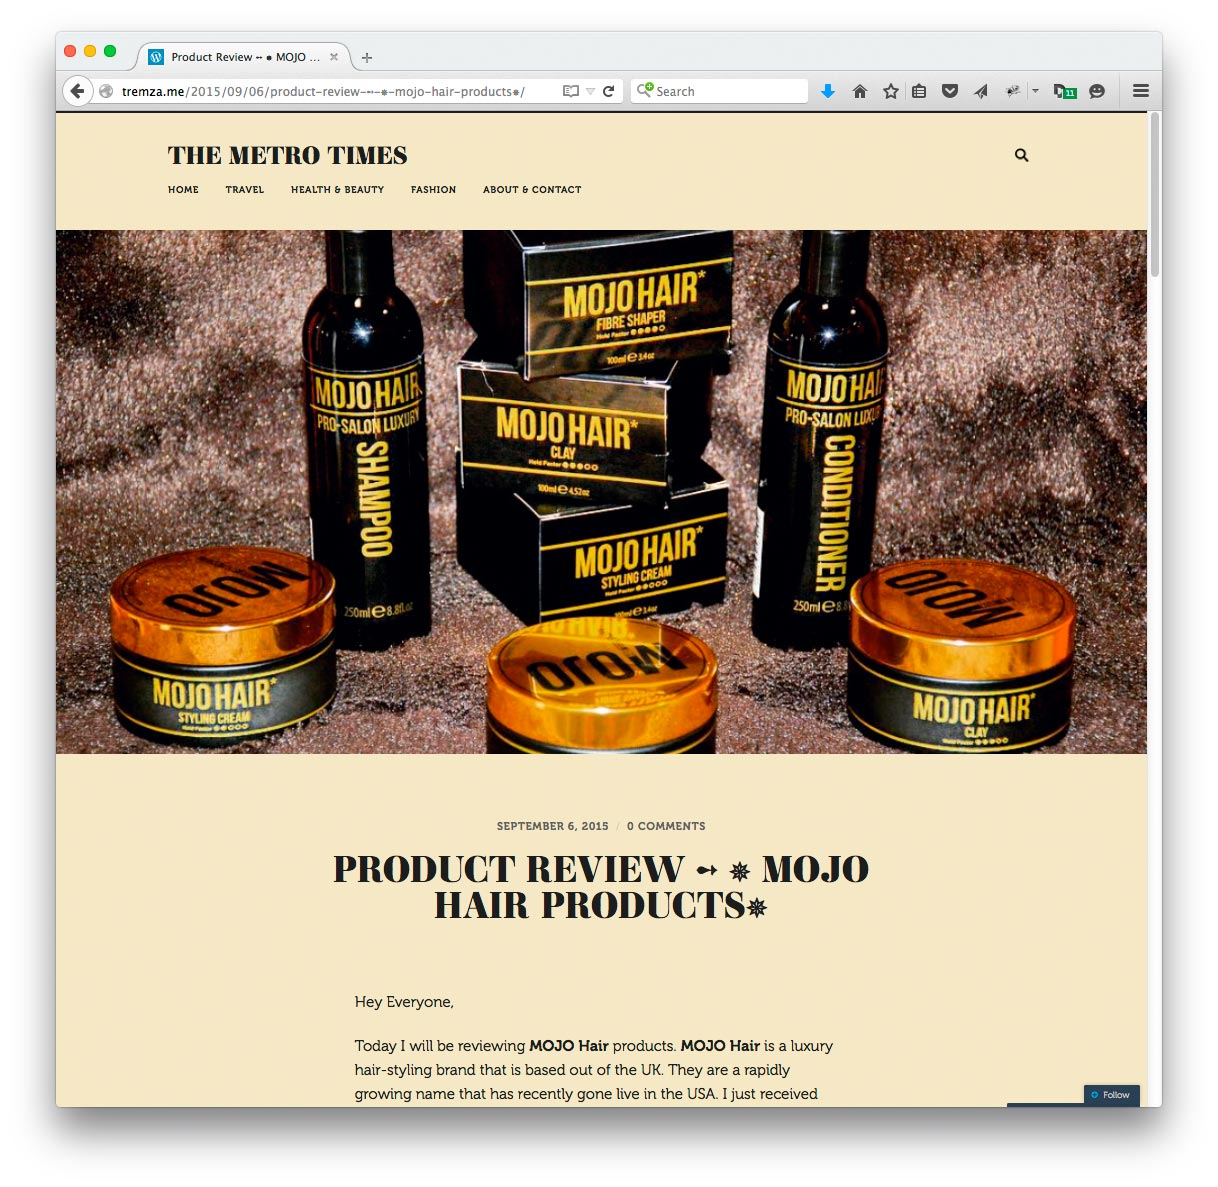 The Metro Times reviews Mojo Hair*